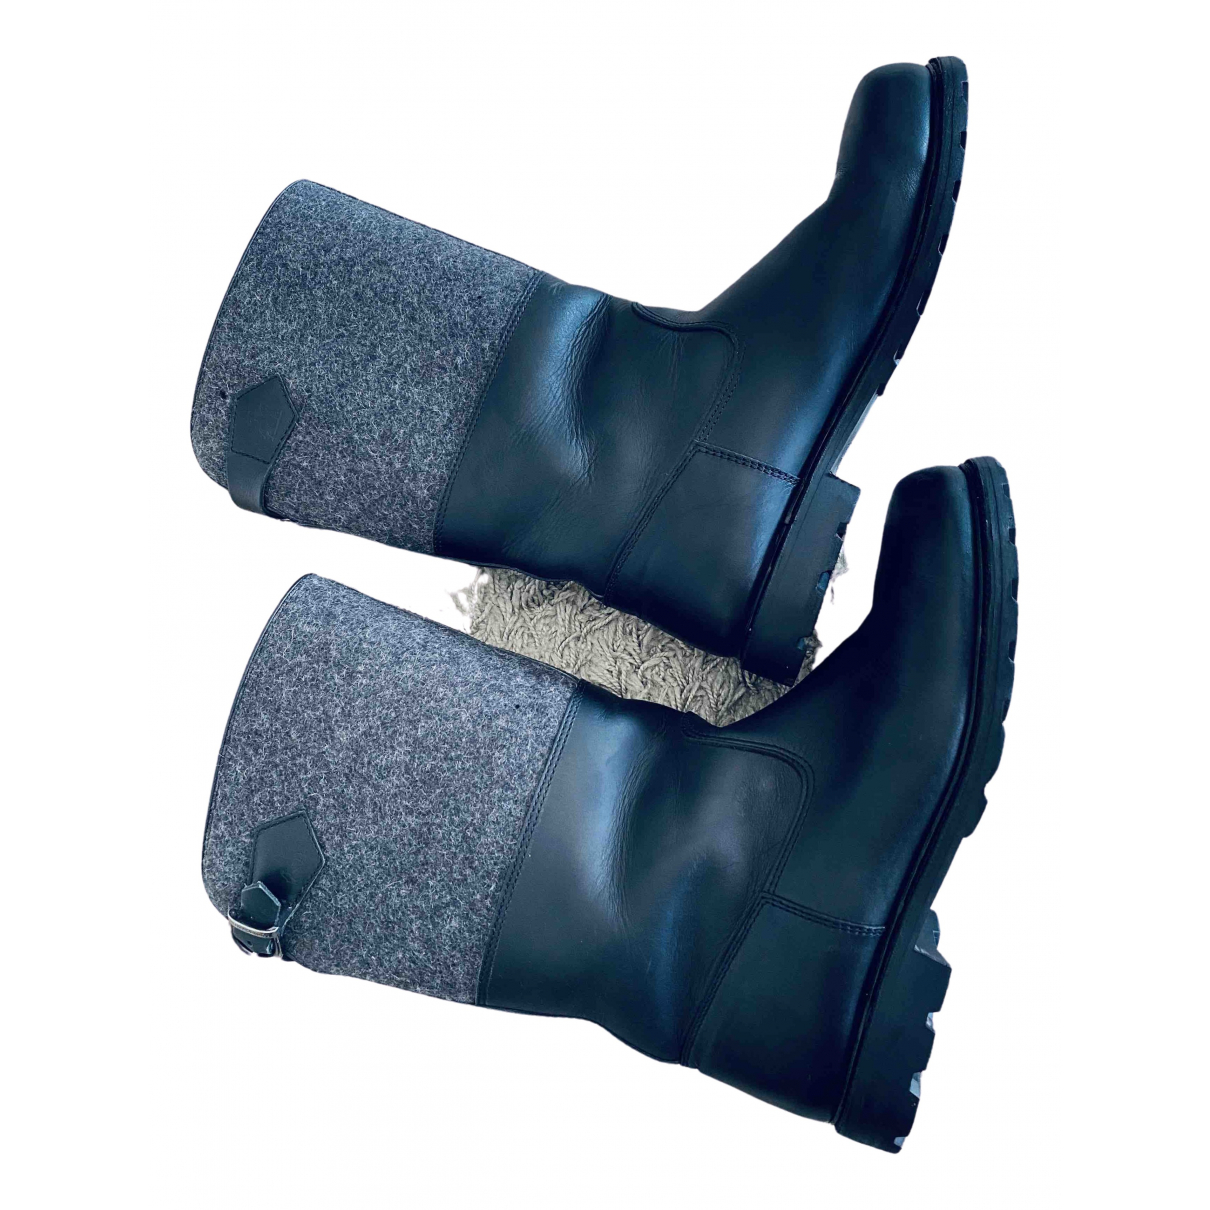 Ludwig Reiter \N Black Leather Boots for Men 45 EU